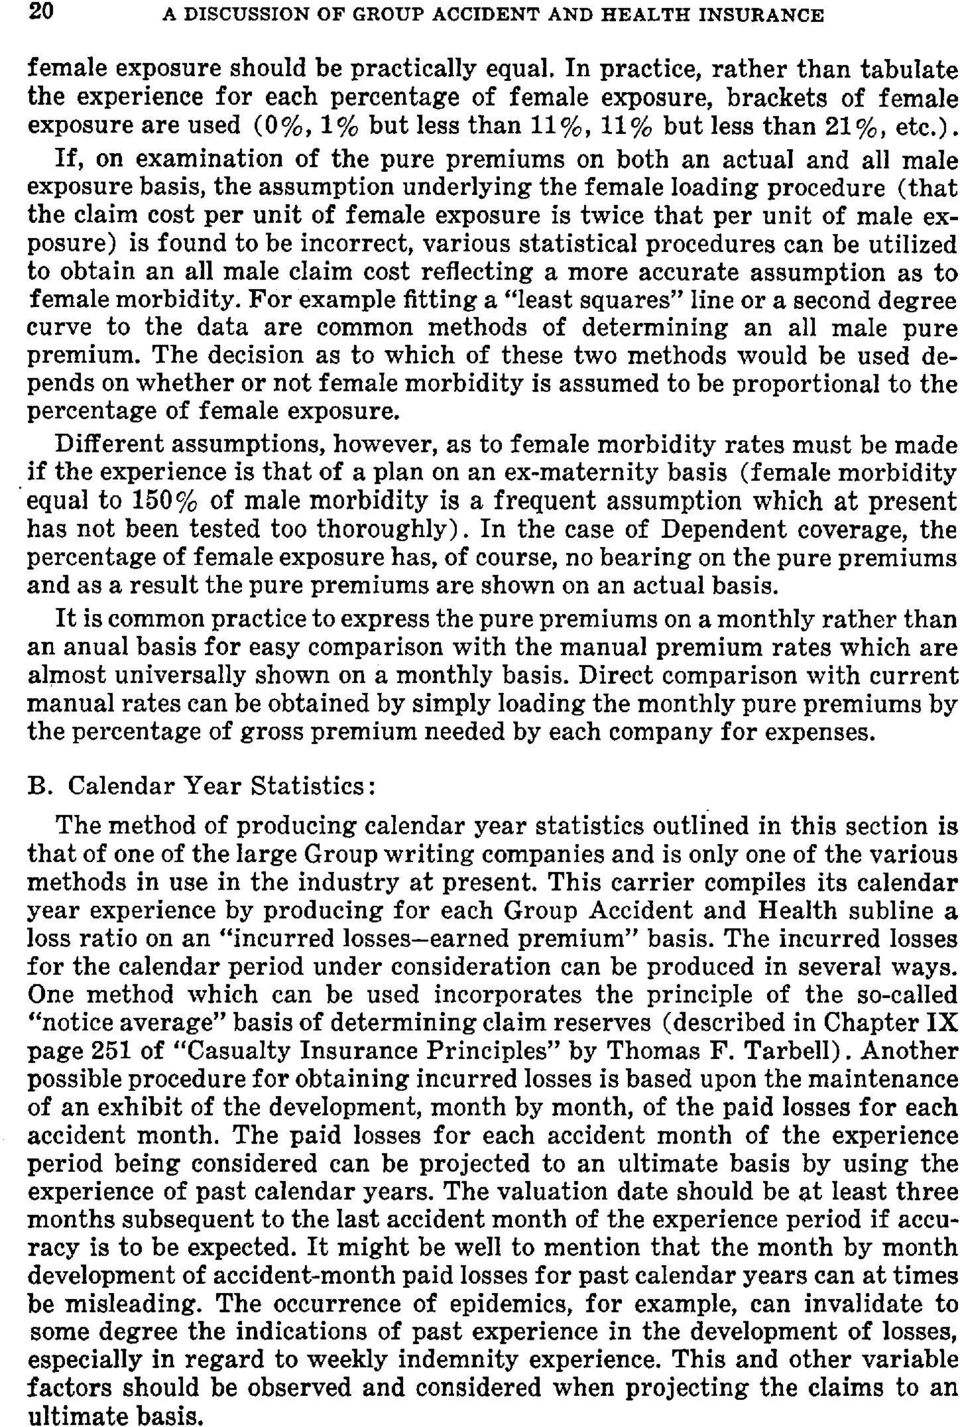 If, on examination of the pure premiums on both an actual and all male exposure basis, the assumption underlying the female loading procedure (that the claim cost per unit of female exposure is twice